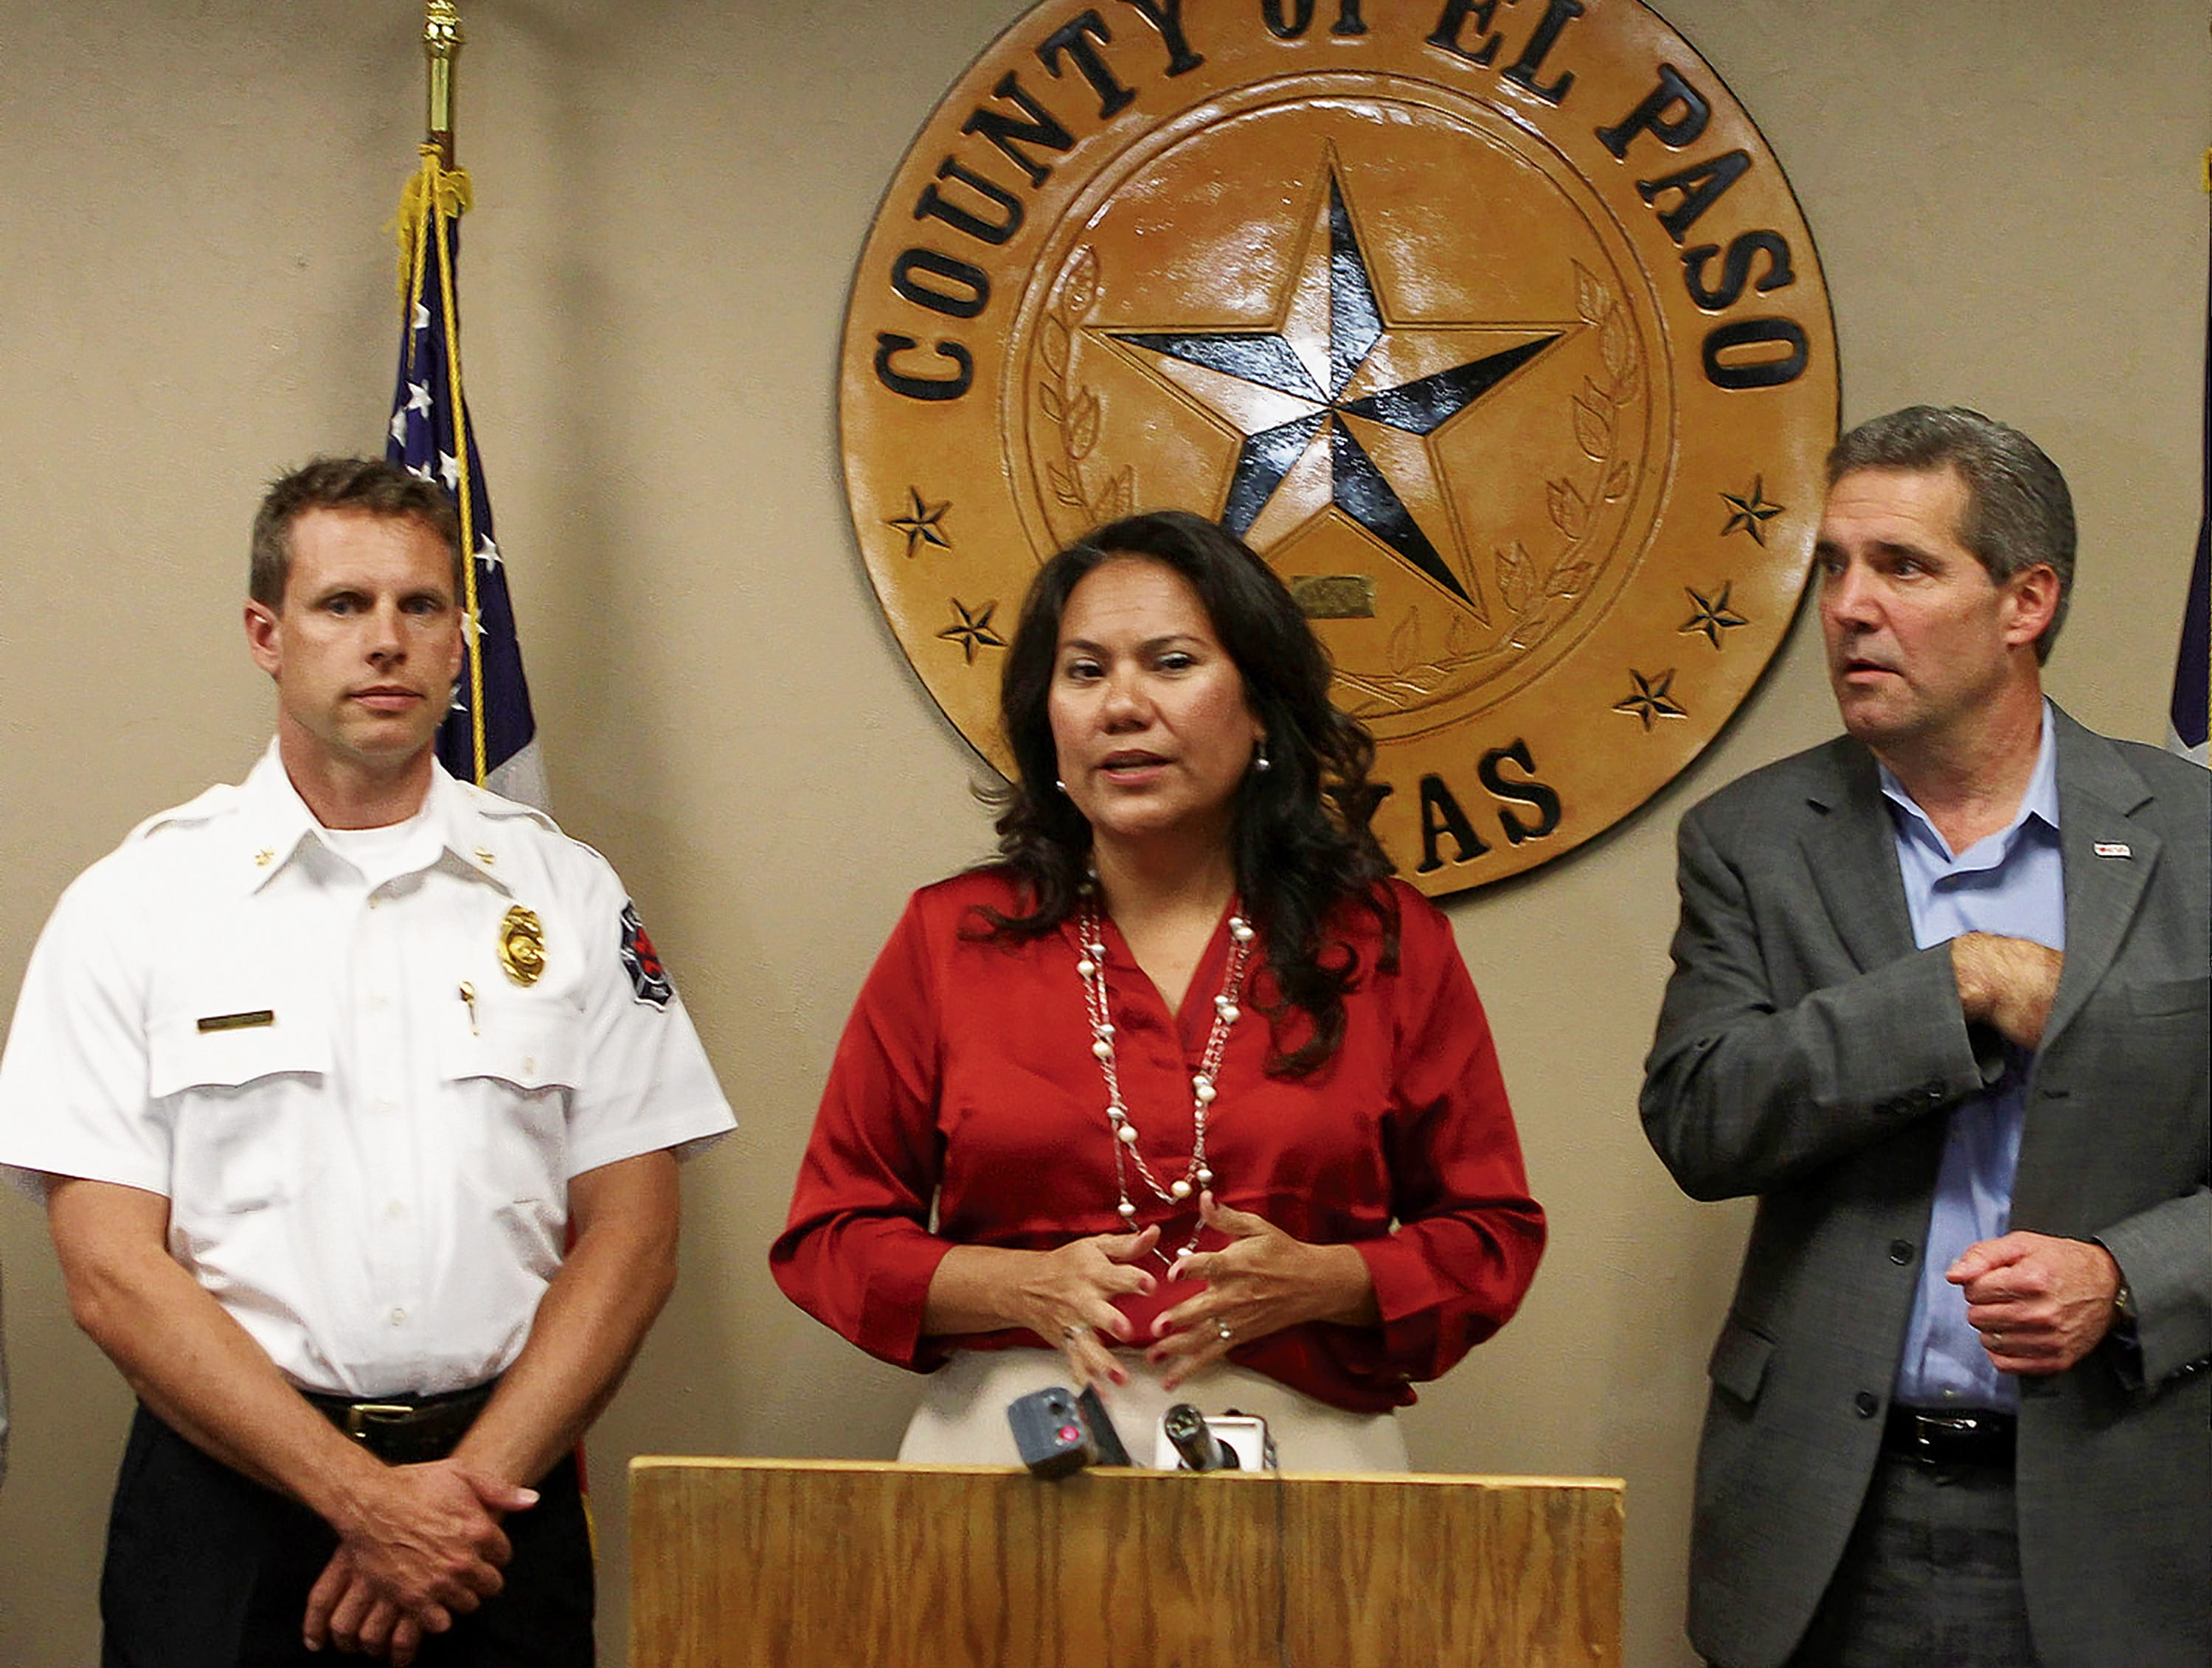 El Paso County Judge Veronica Escobar was flanked by El Paso Fire Dept. Deputy Chief Scott Calderwood, Emergency Management coordinator, left, and Mark Mathis of the American Red Cross Monday.